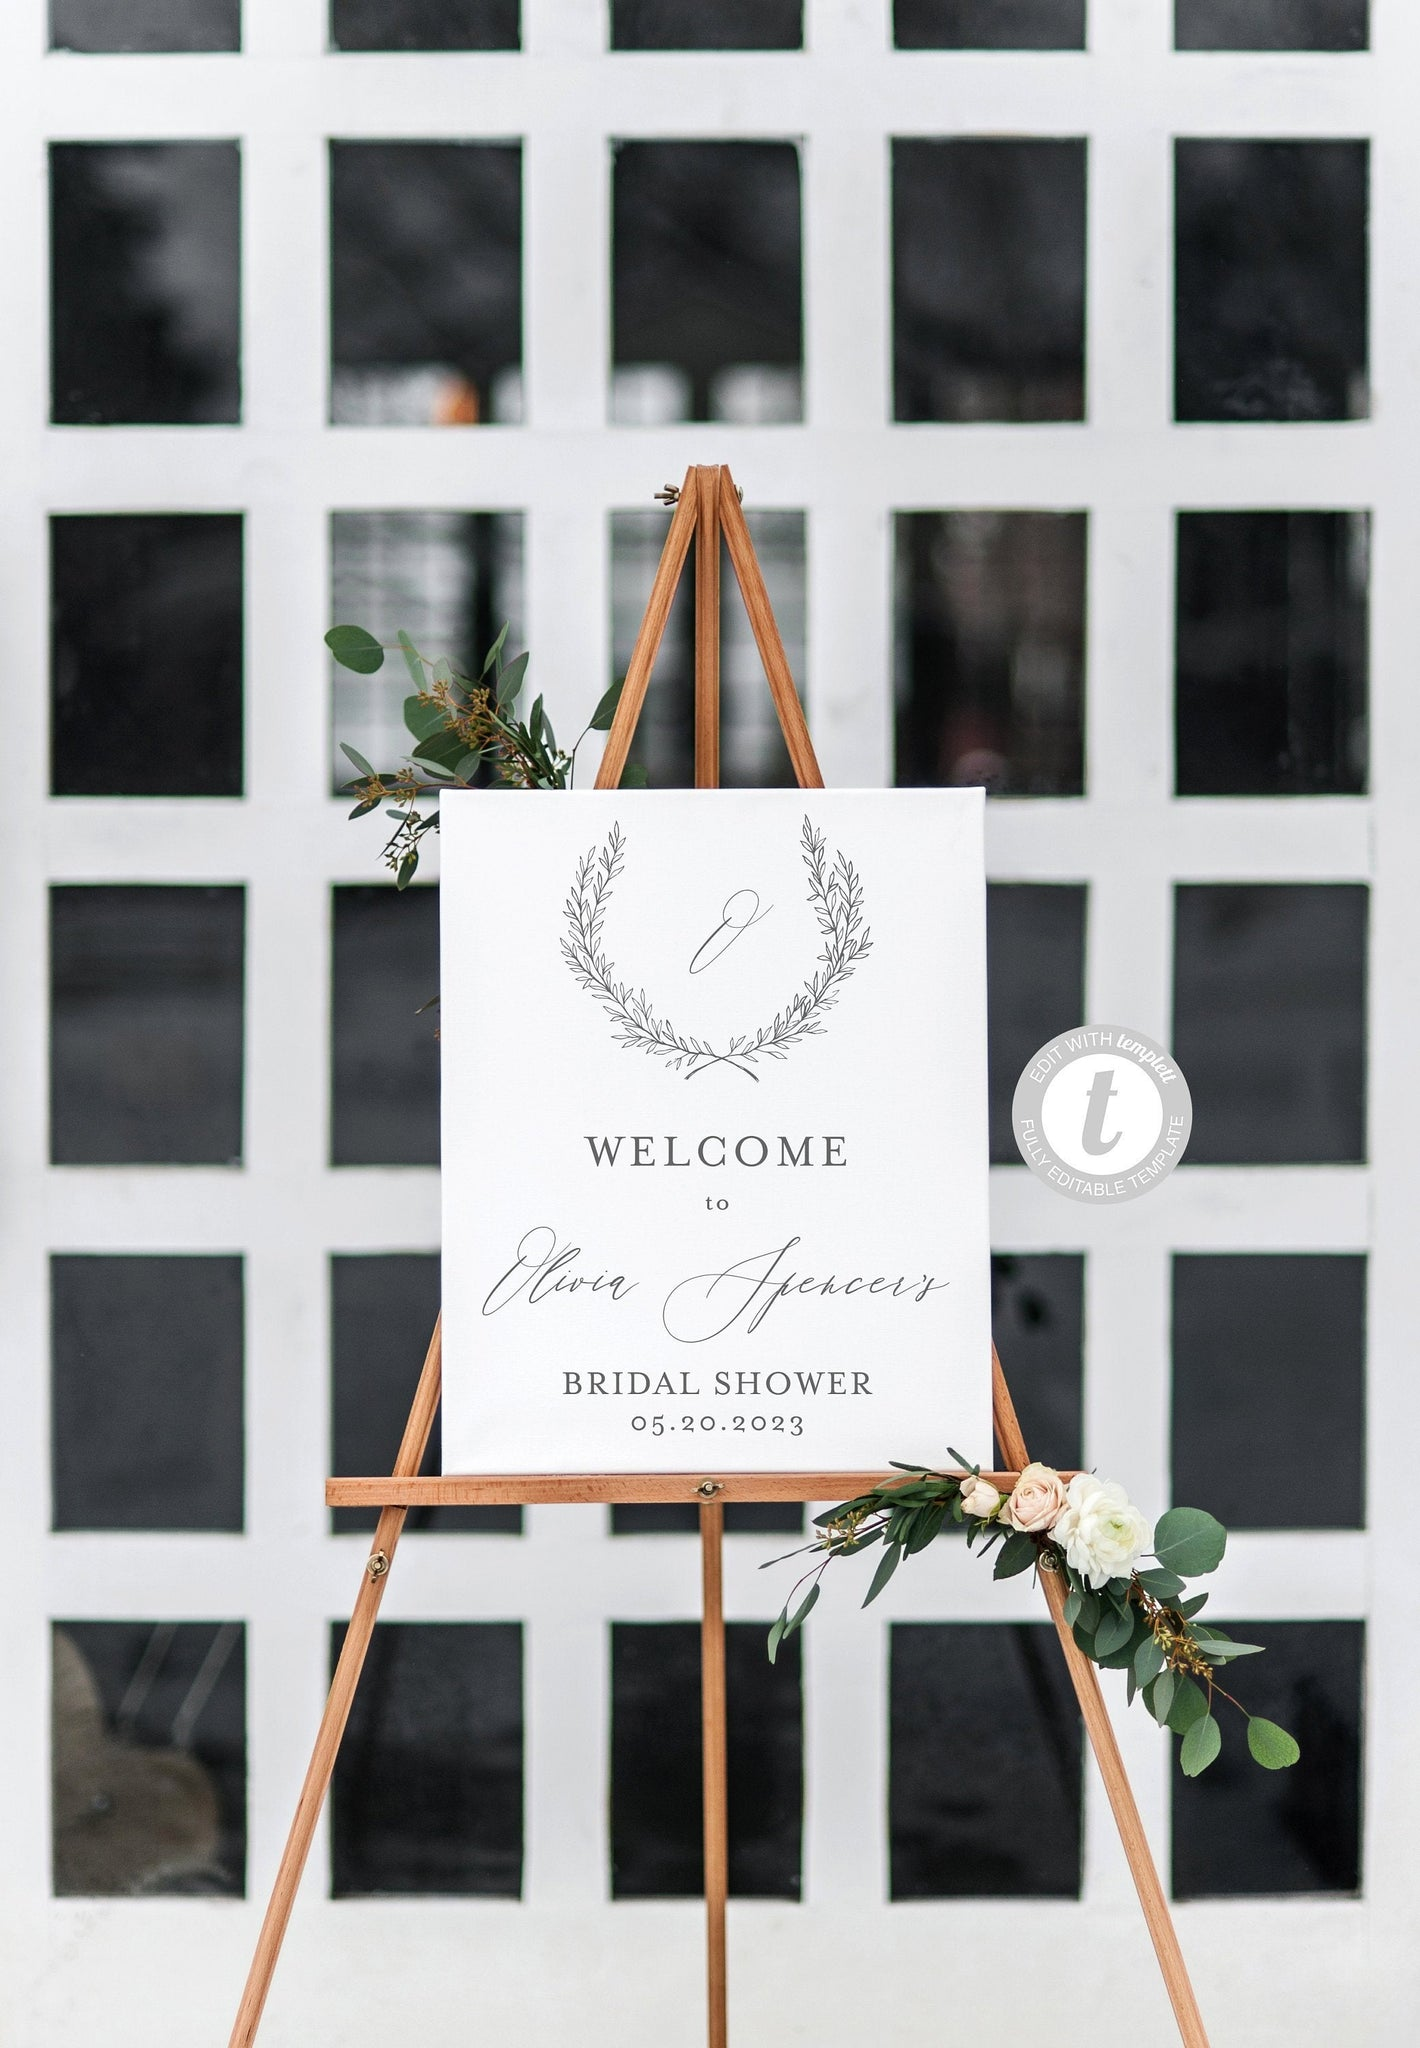 Monogram Wreath Bridal Shower Welcome Sign Printable Template Editable Instant Download Wedding Décor  -Olivia